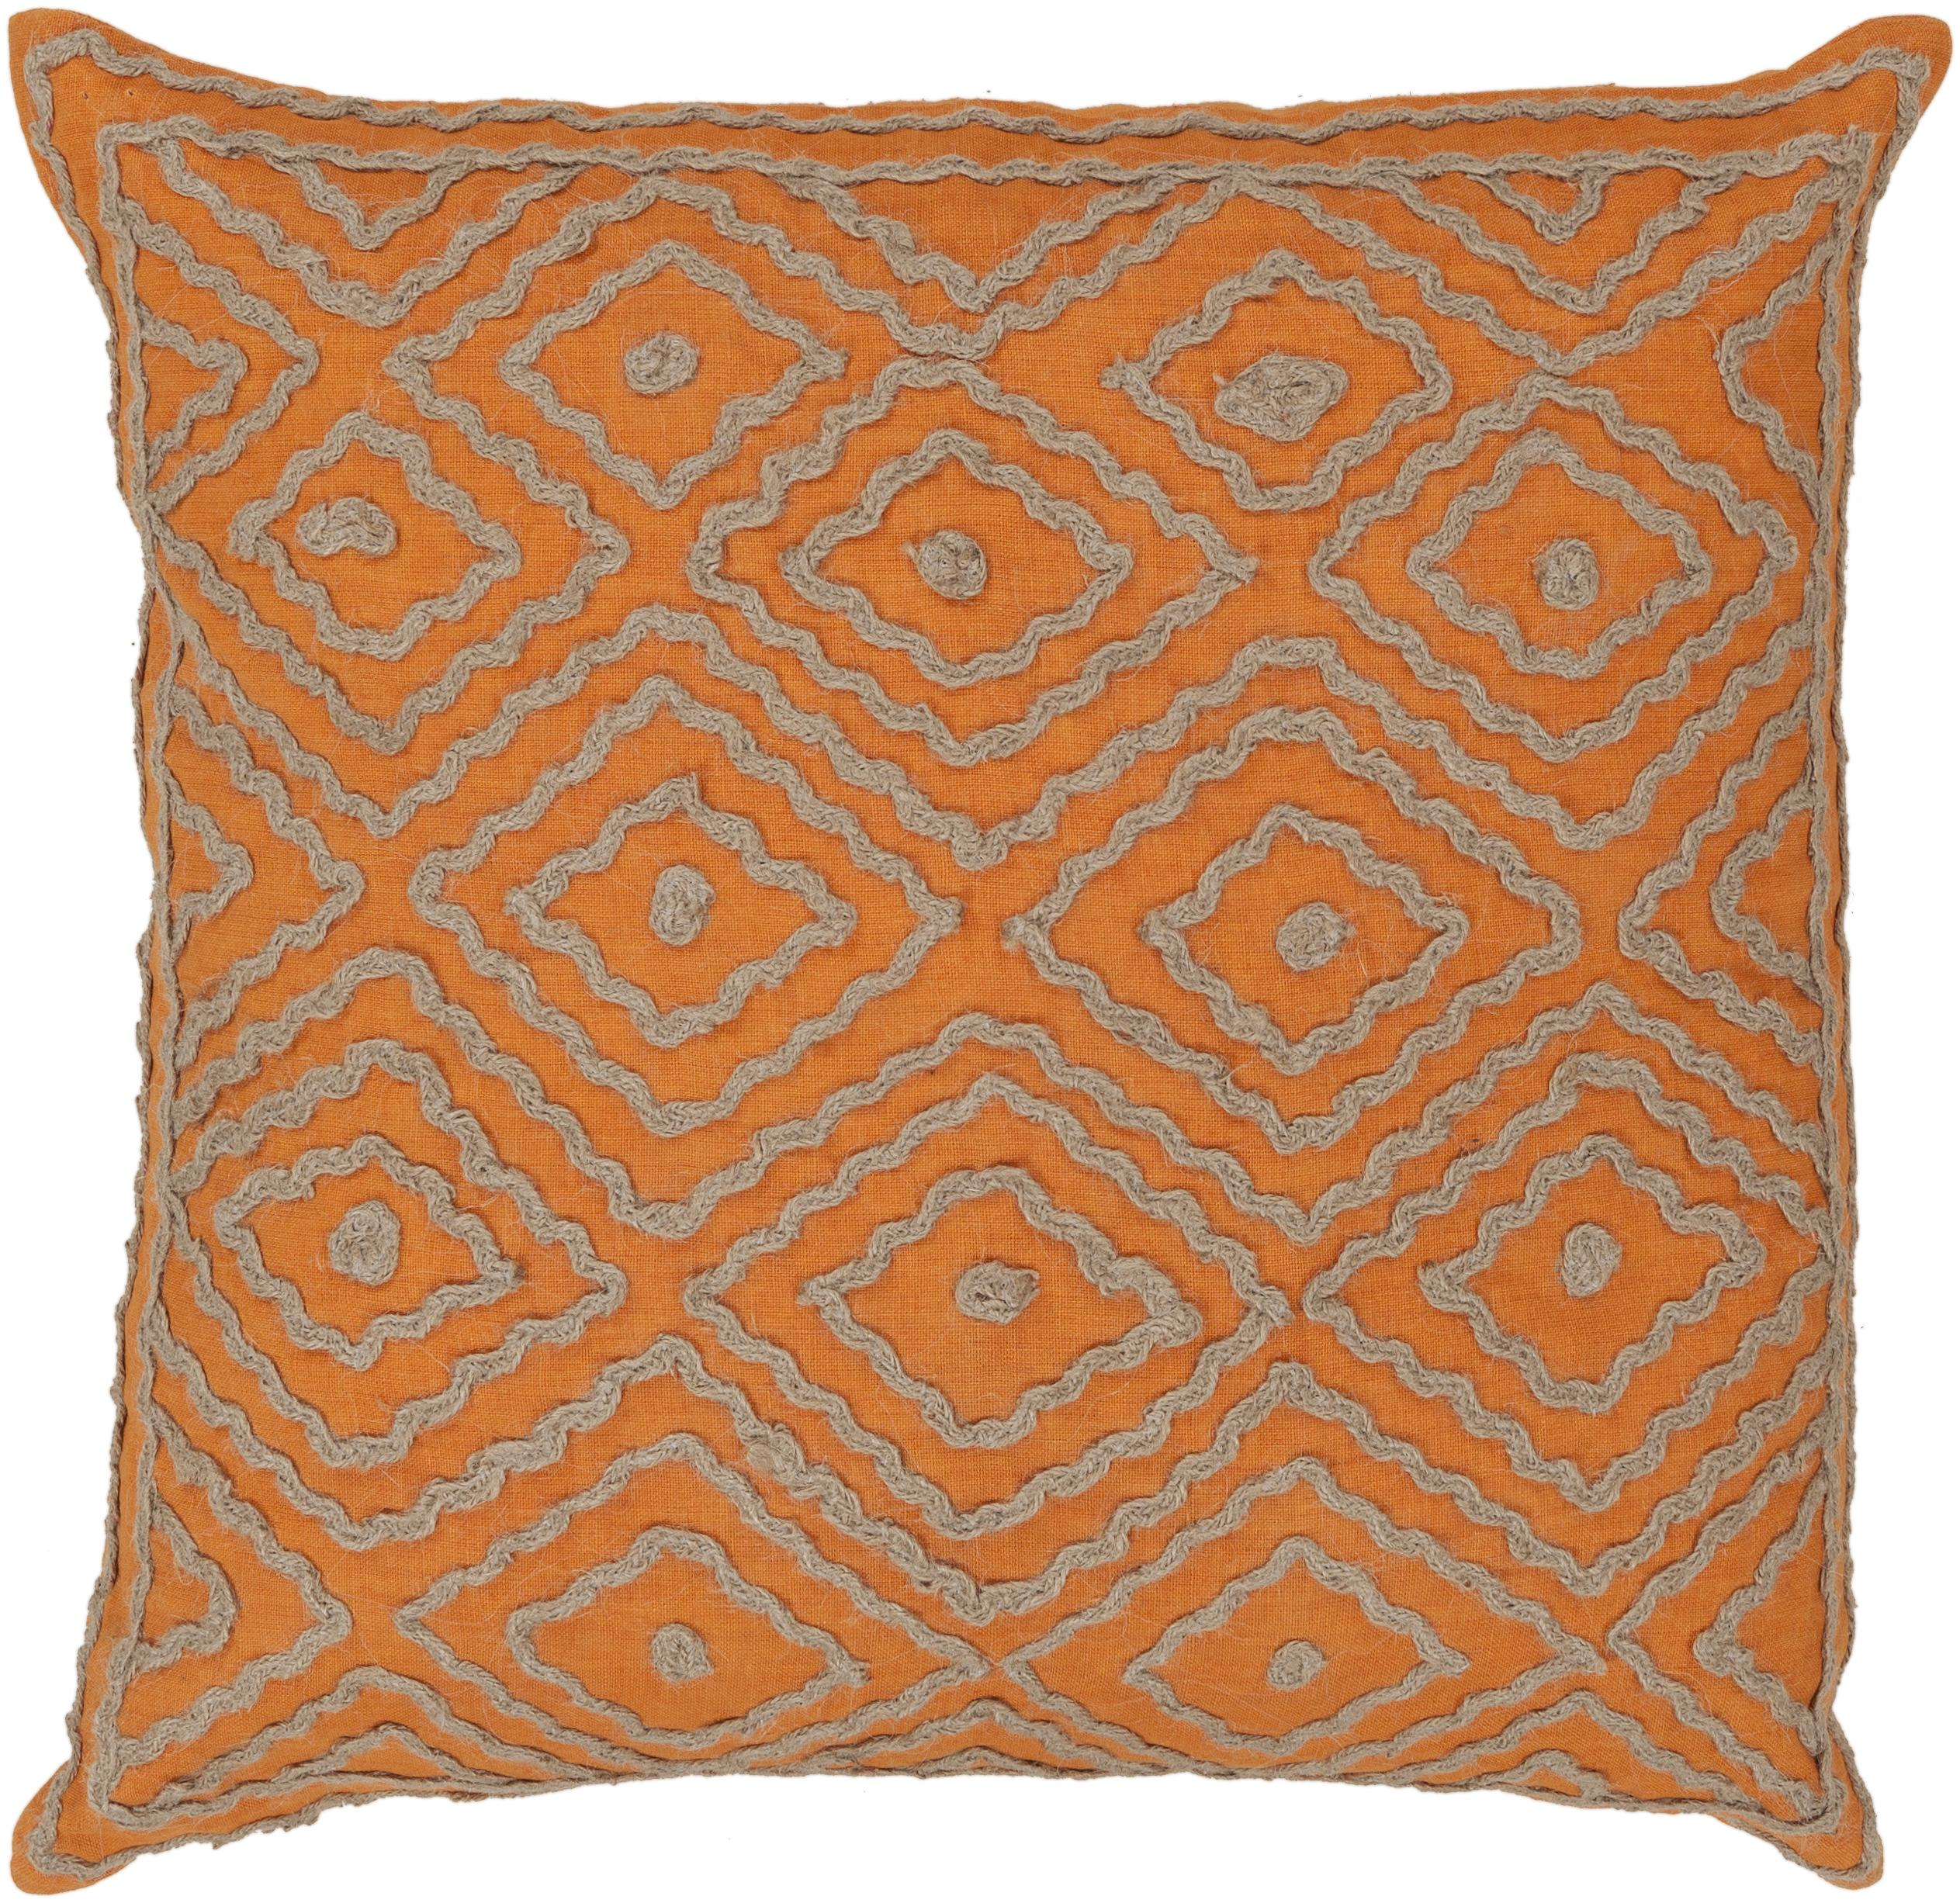 "Surya Pillows 20"" x 20"" Pillow - Item Number: LD029-2020P"